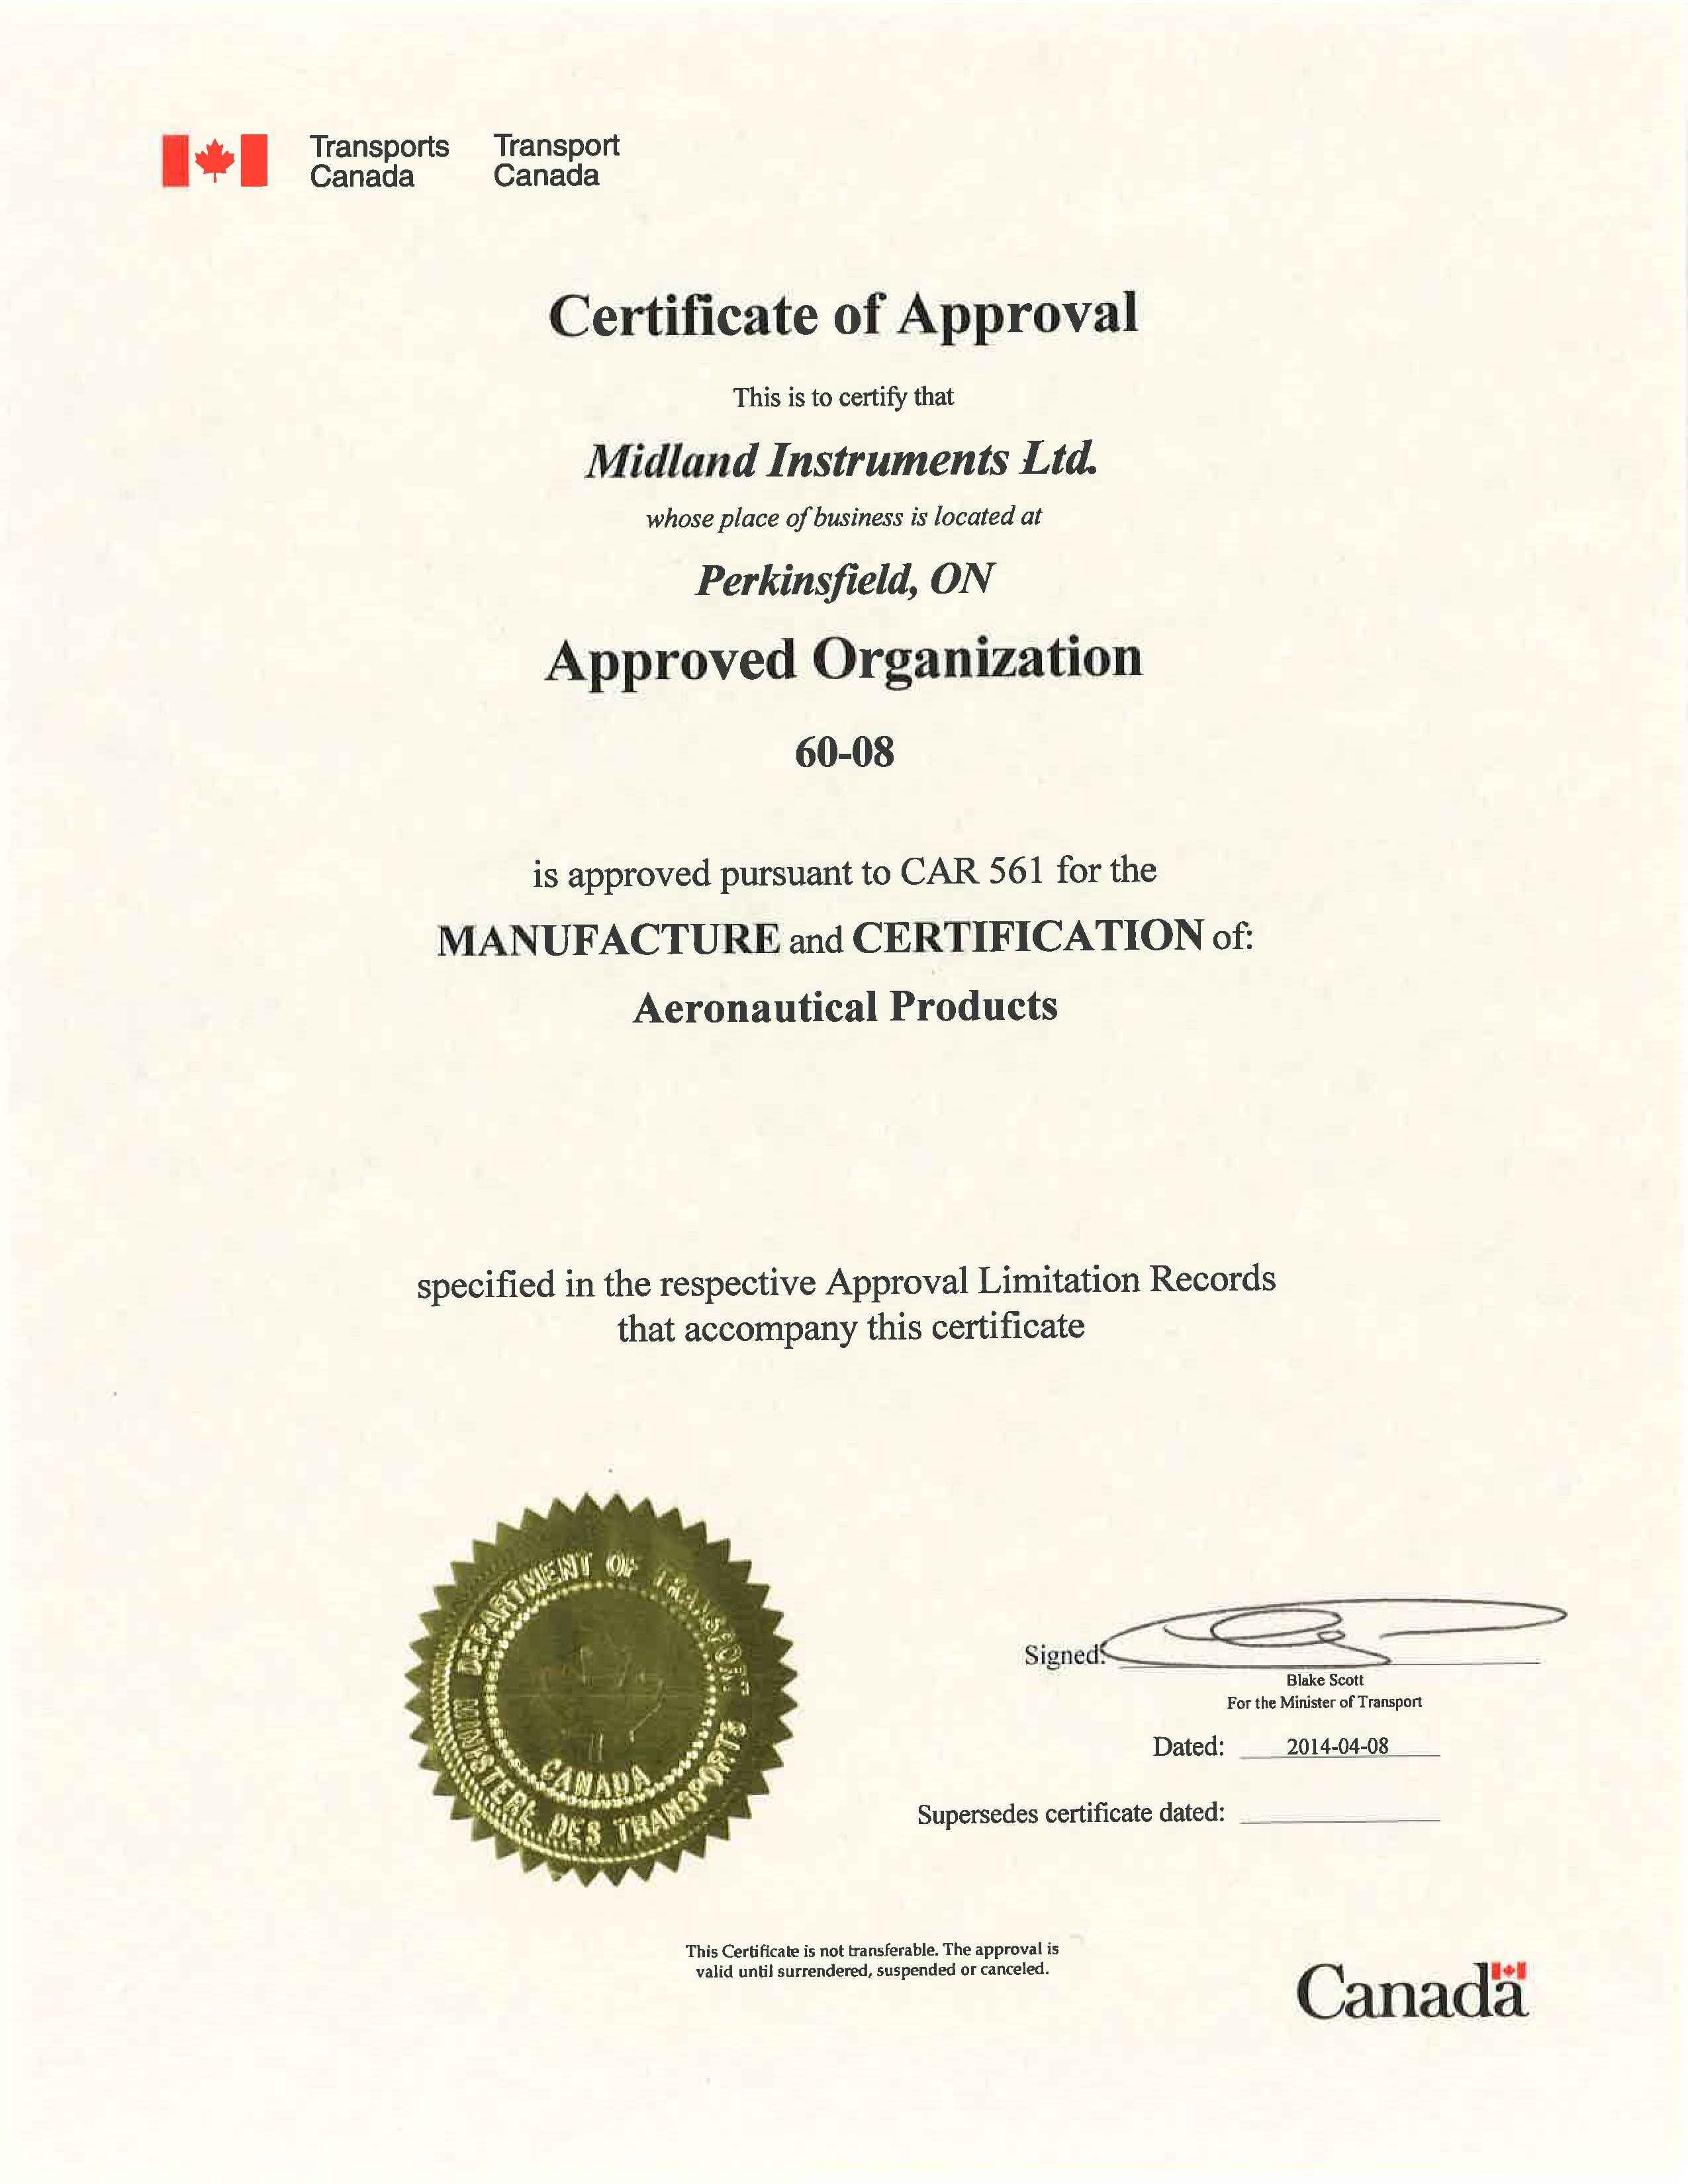 Approved Manufacturer of Aeronautical Products